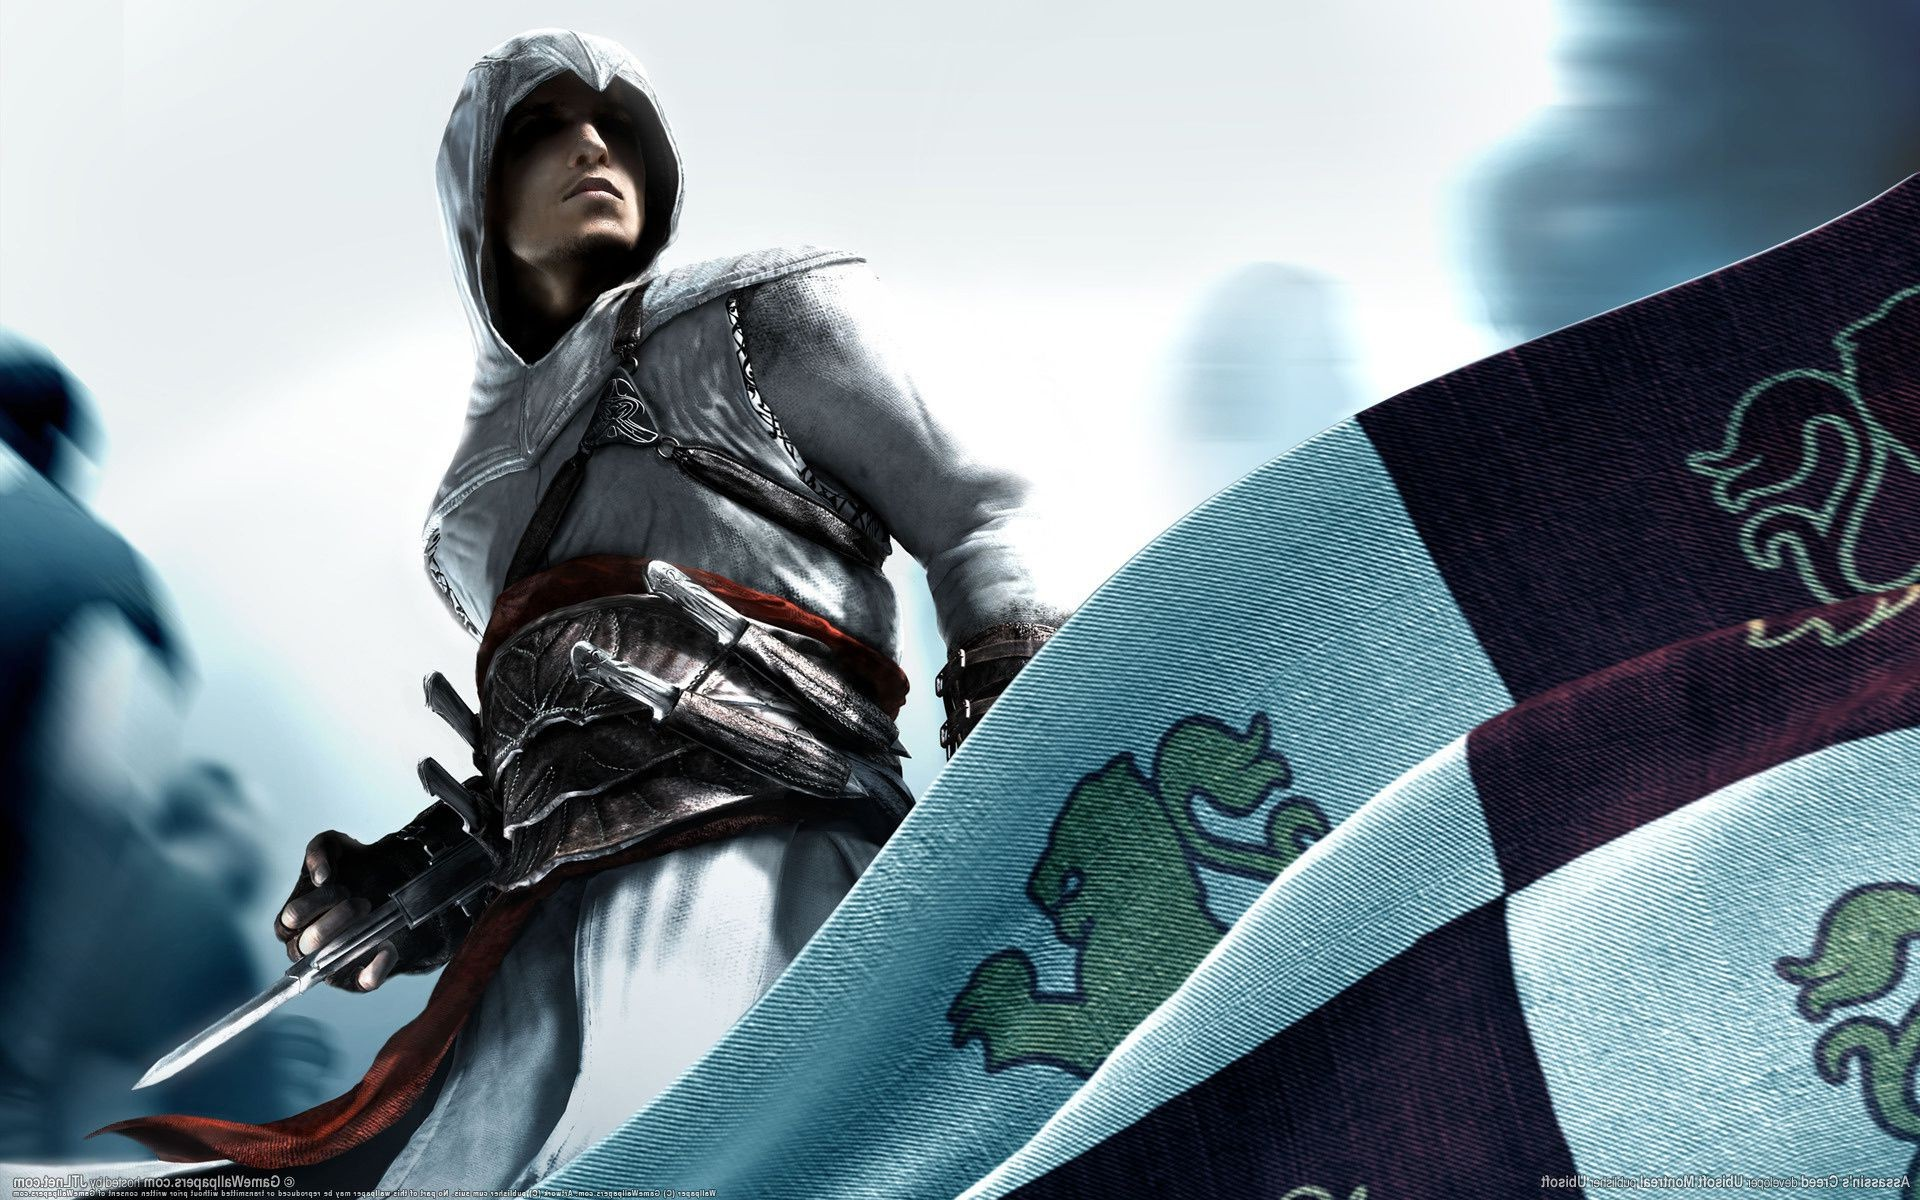 Assassins creed asasin flag credo